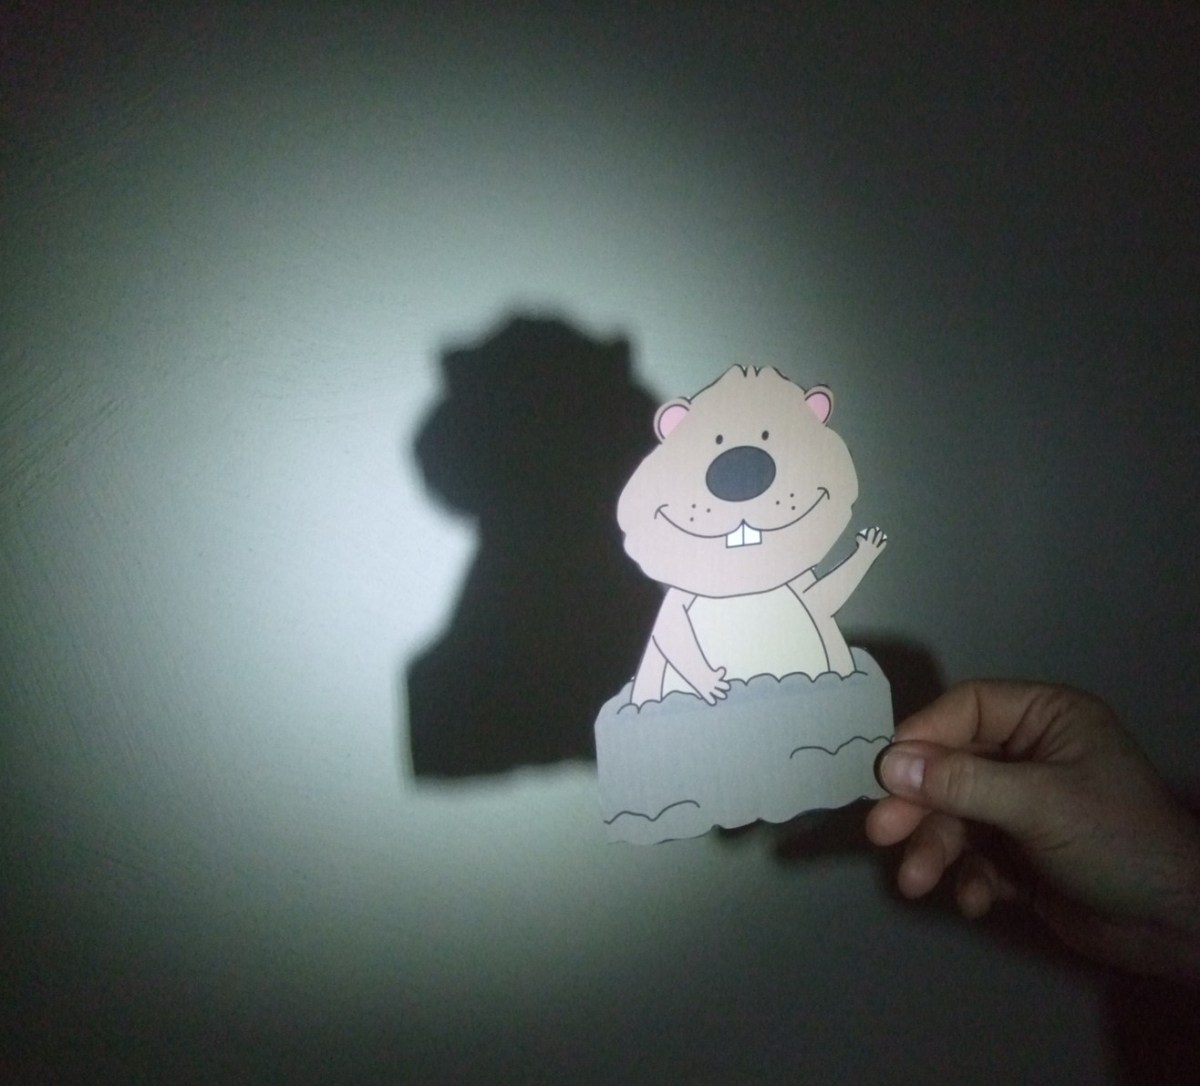 Groundhog Day Activities (shadow experiments, books, craft, puppet)